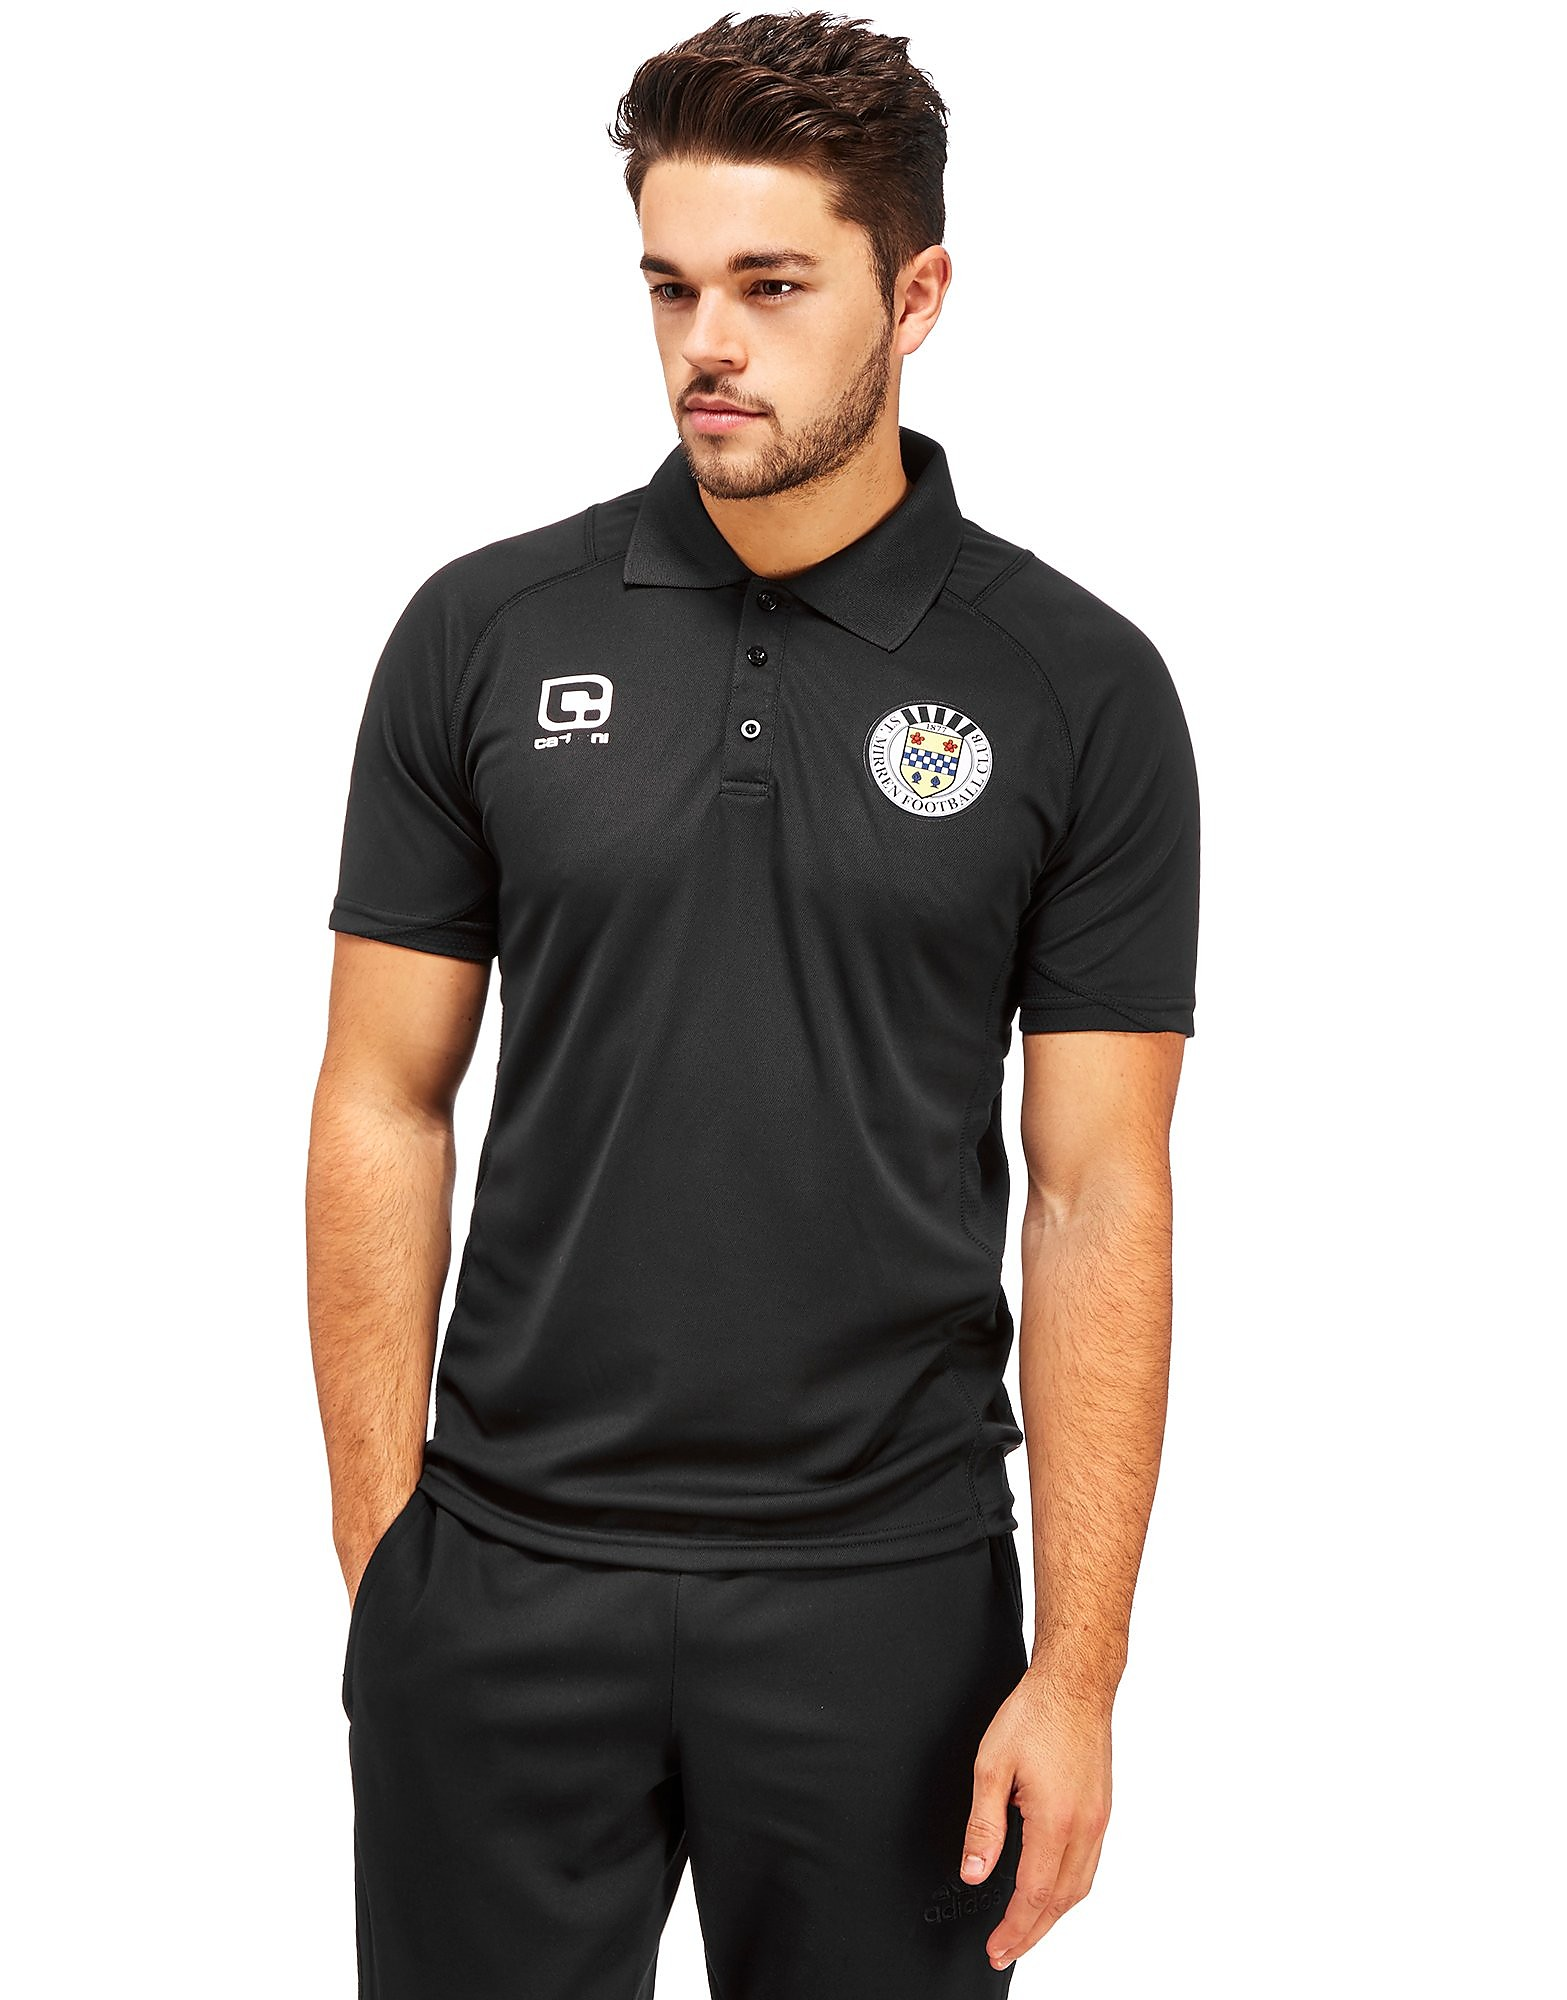 Carbrini St. Mirren Polo Shirt